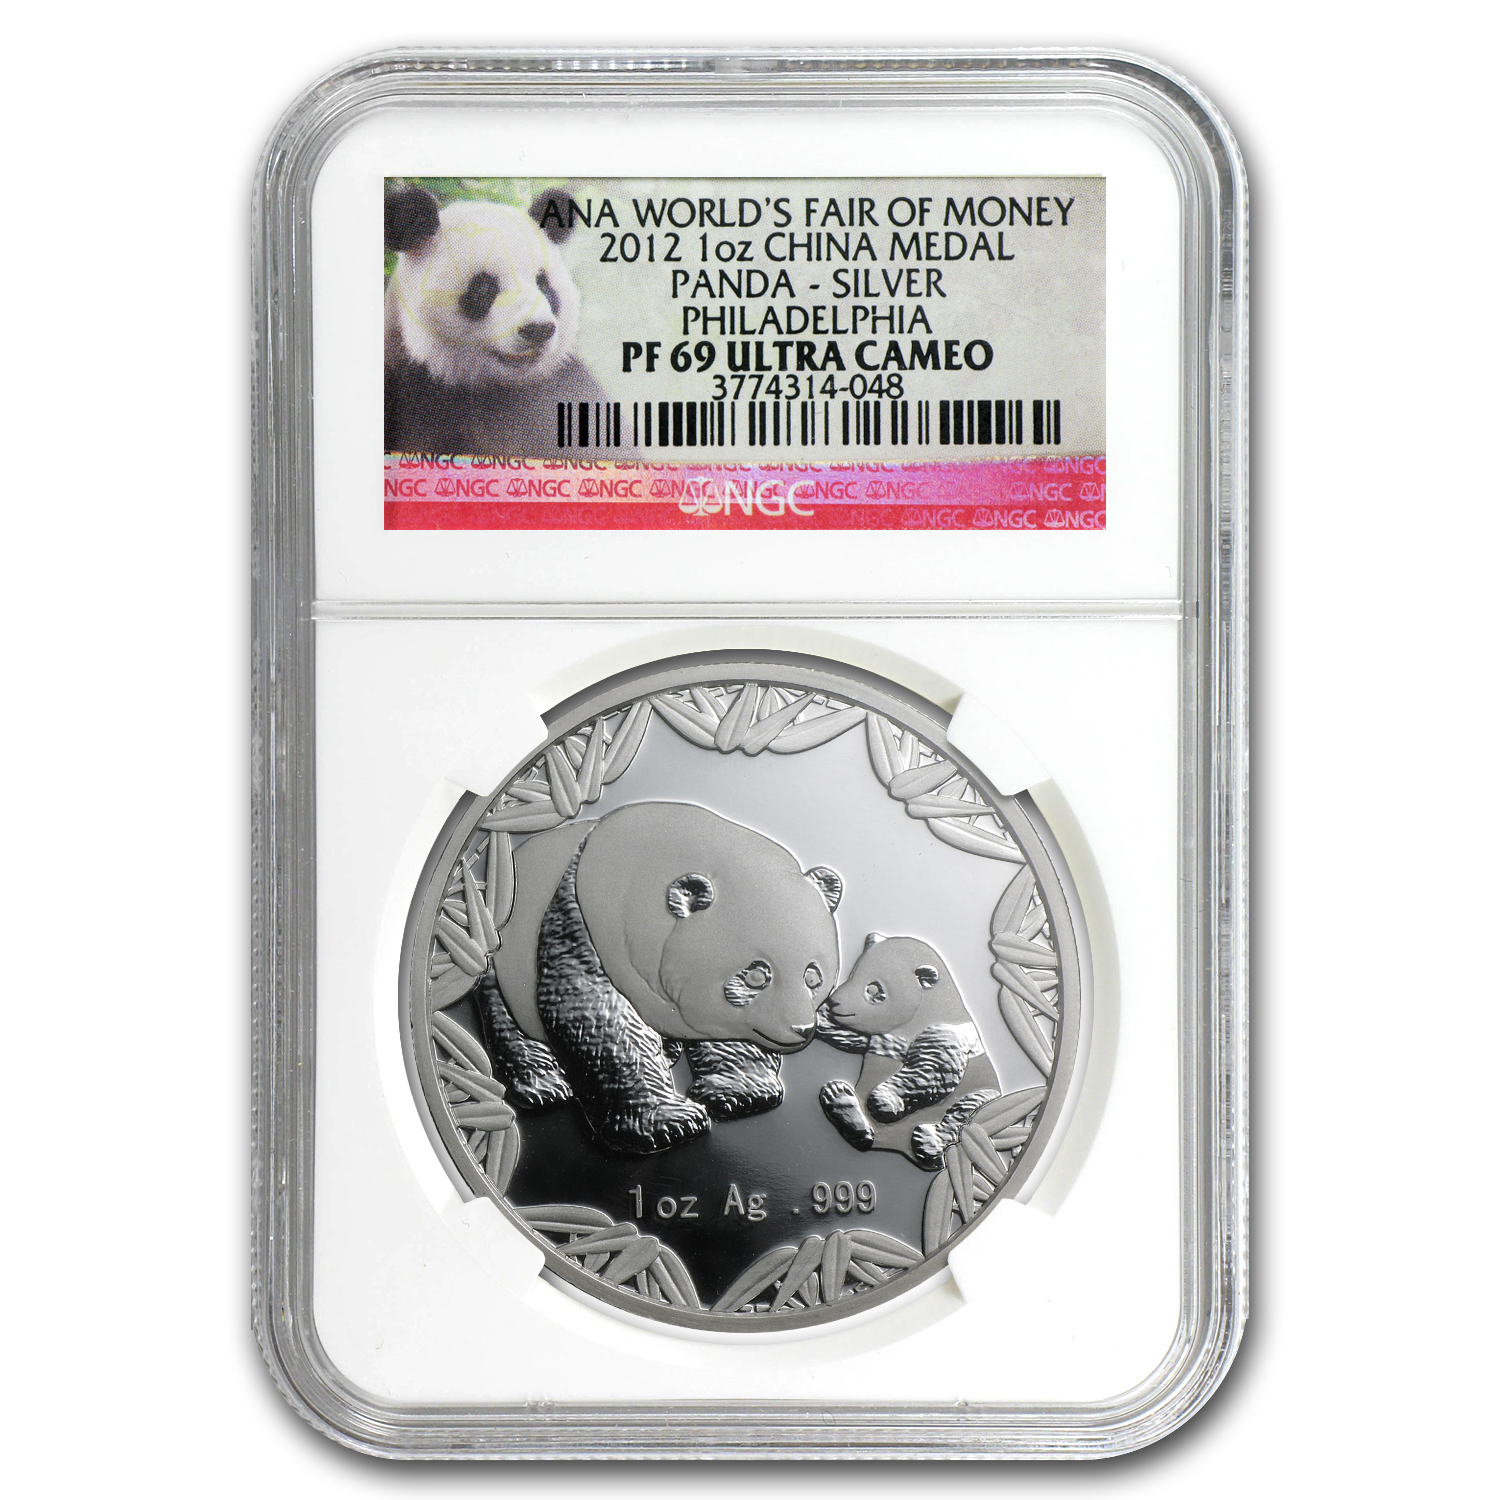 2012 China 1 oz Silver Panda Philadelphia Coin Show PF-69 NGC